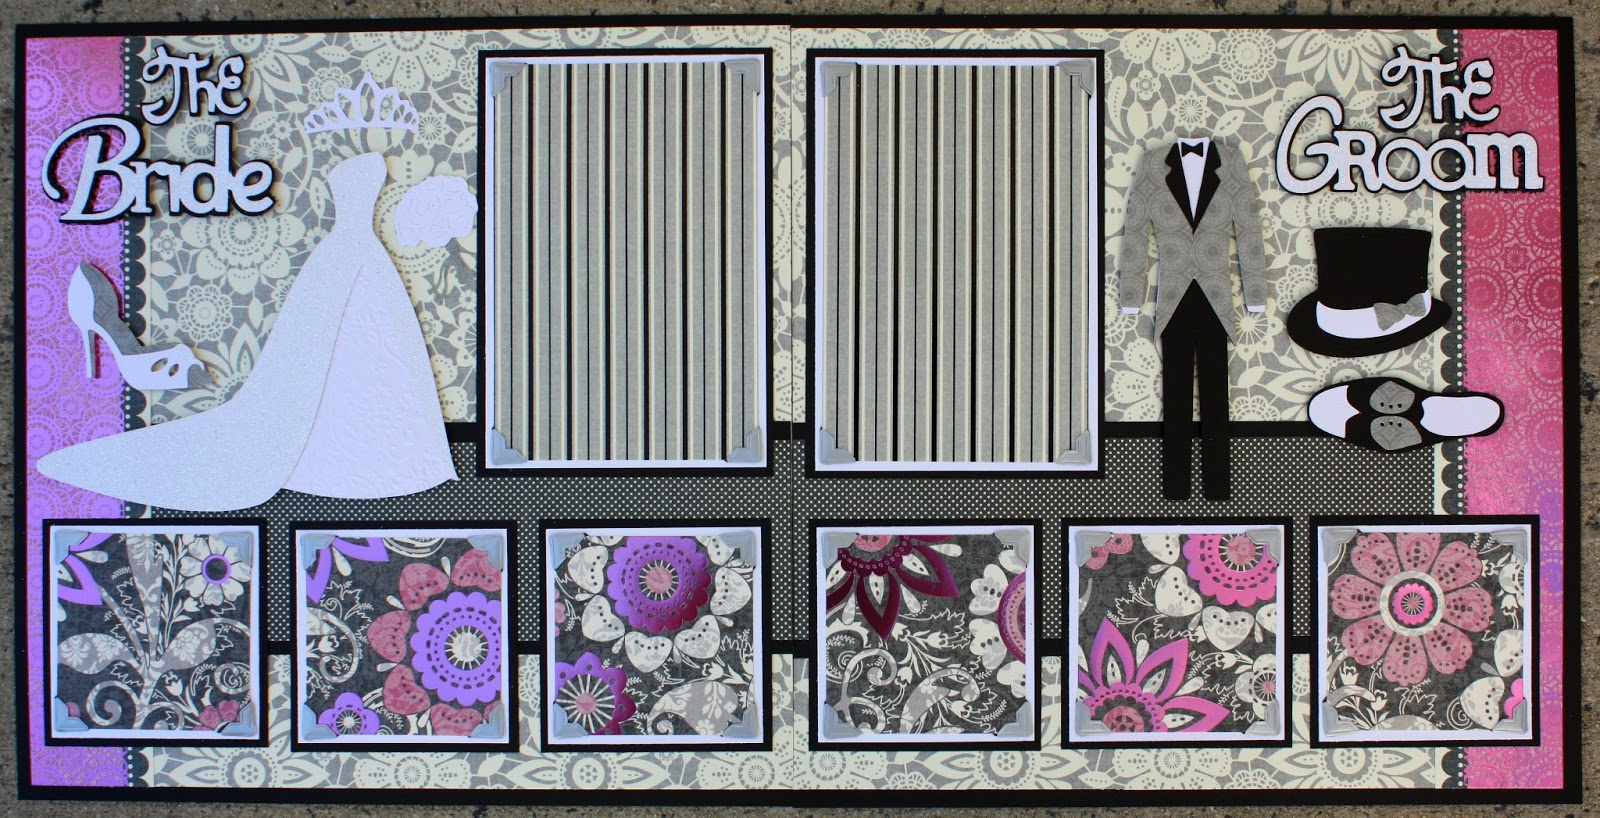 Wedding scrapbook ideas layouts - The Dress Shoe Bouquet And Tiara Were All Cut From The Wedding Solutions Cartridge At 5 5 2 2 And 1 Respectively